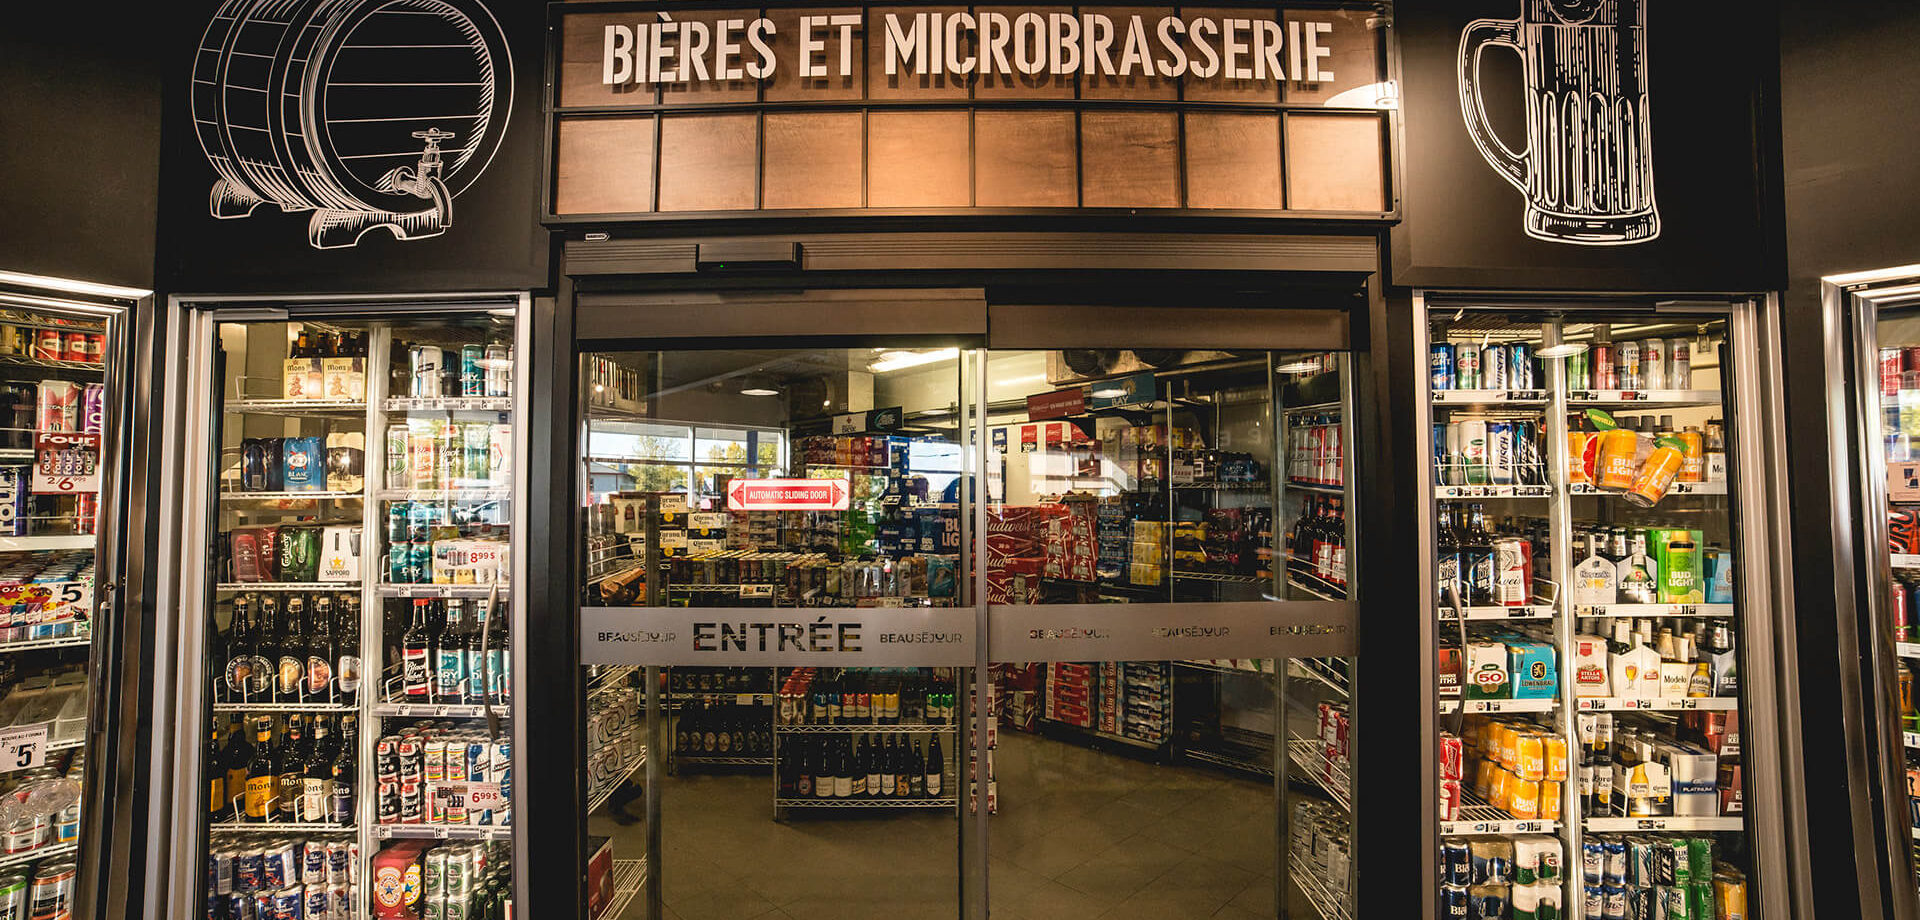 Beer and microbrewery / Bières et microbrasserie